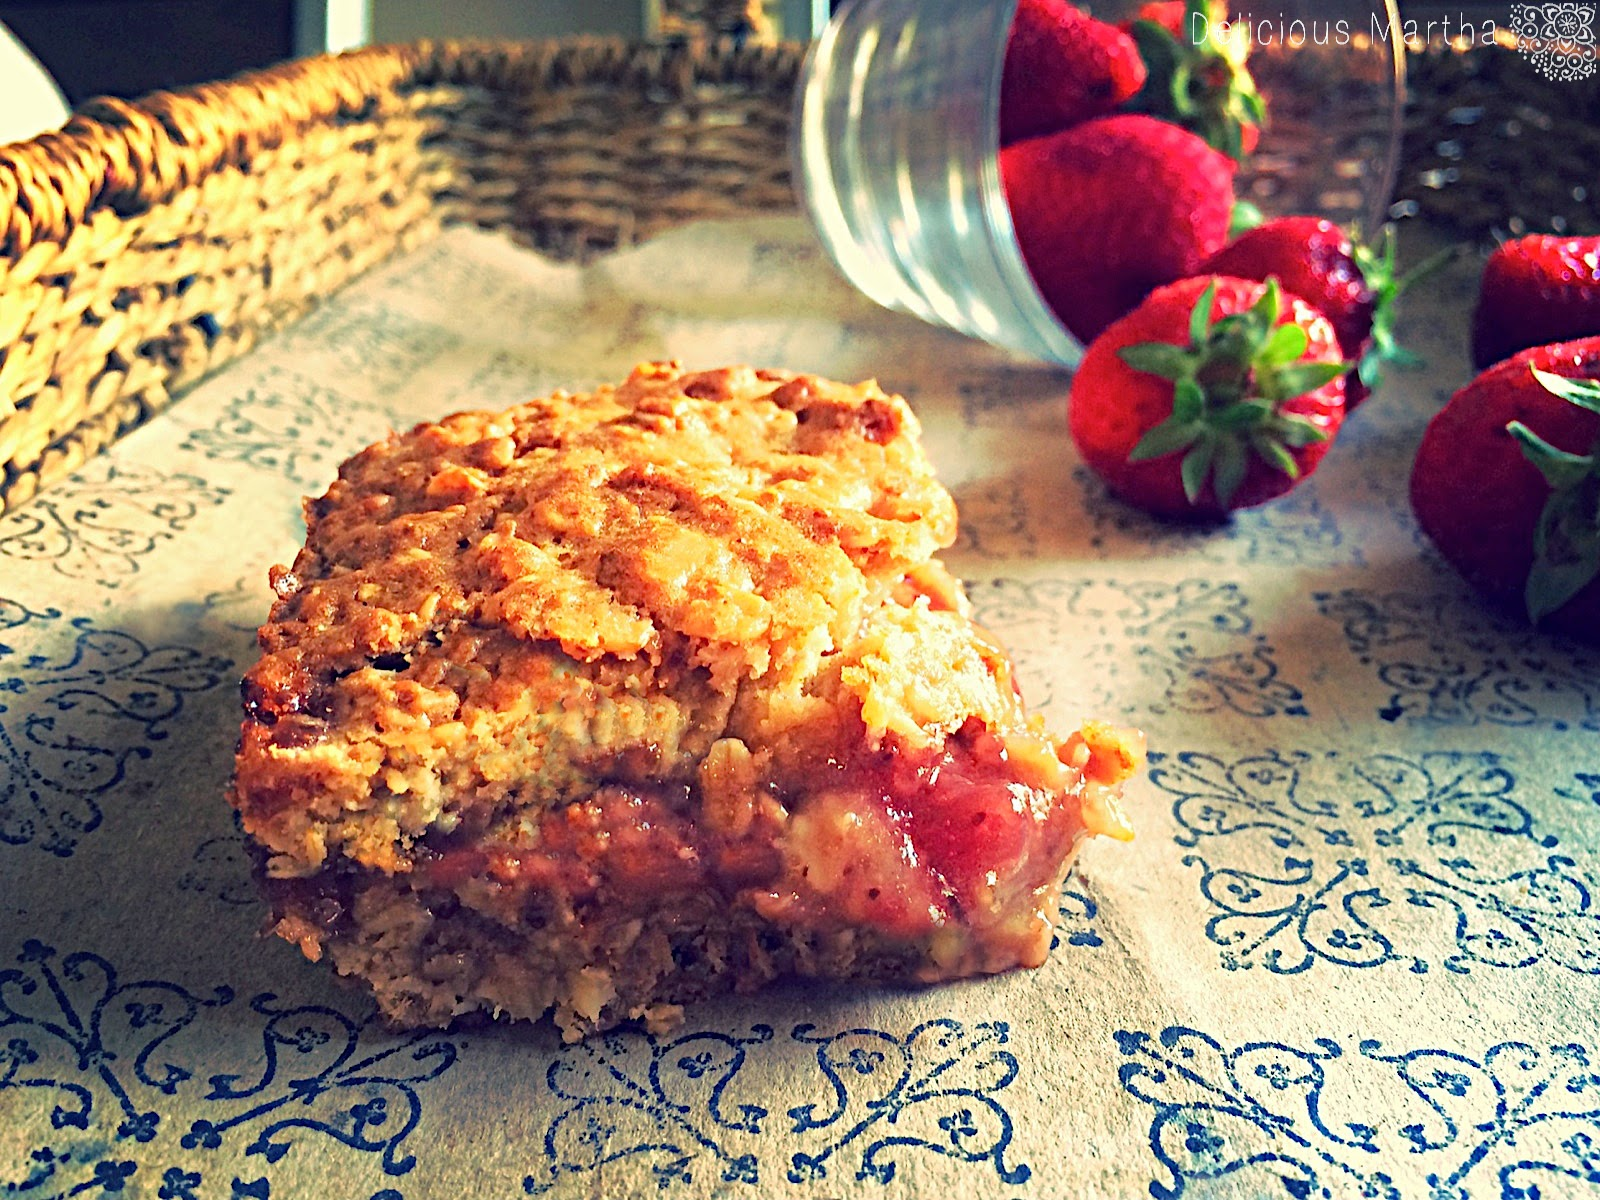 Strawberry Honey Oatmeal Bars [Barritas de miel y avena con fresa]